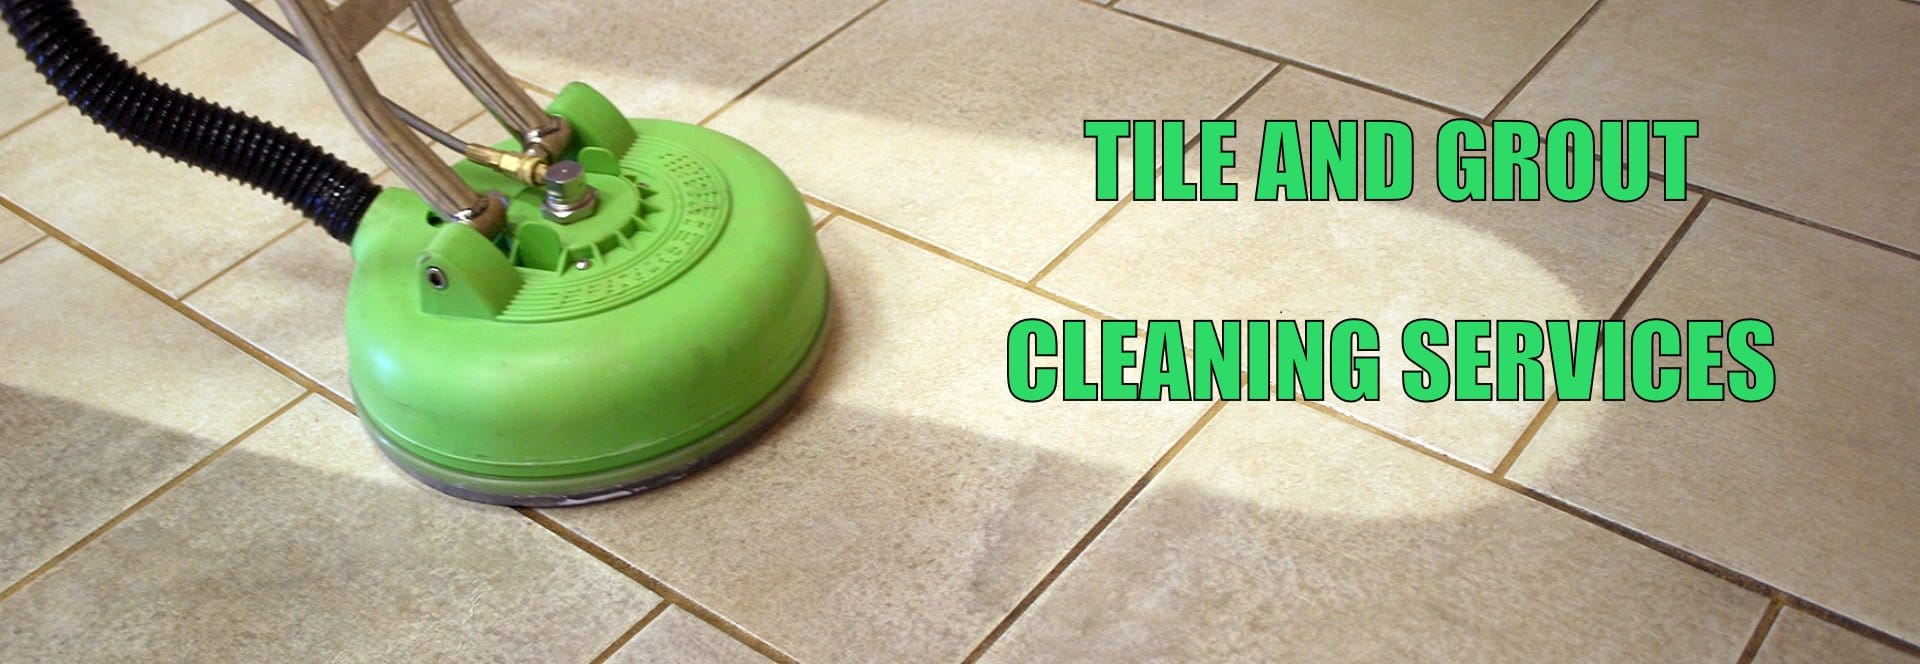 Tile and Grout Cleaning Kitchener-Waterloo